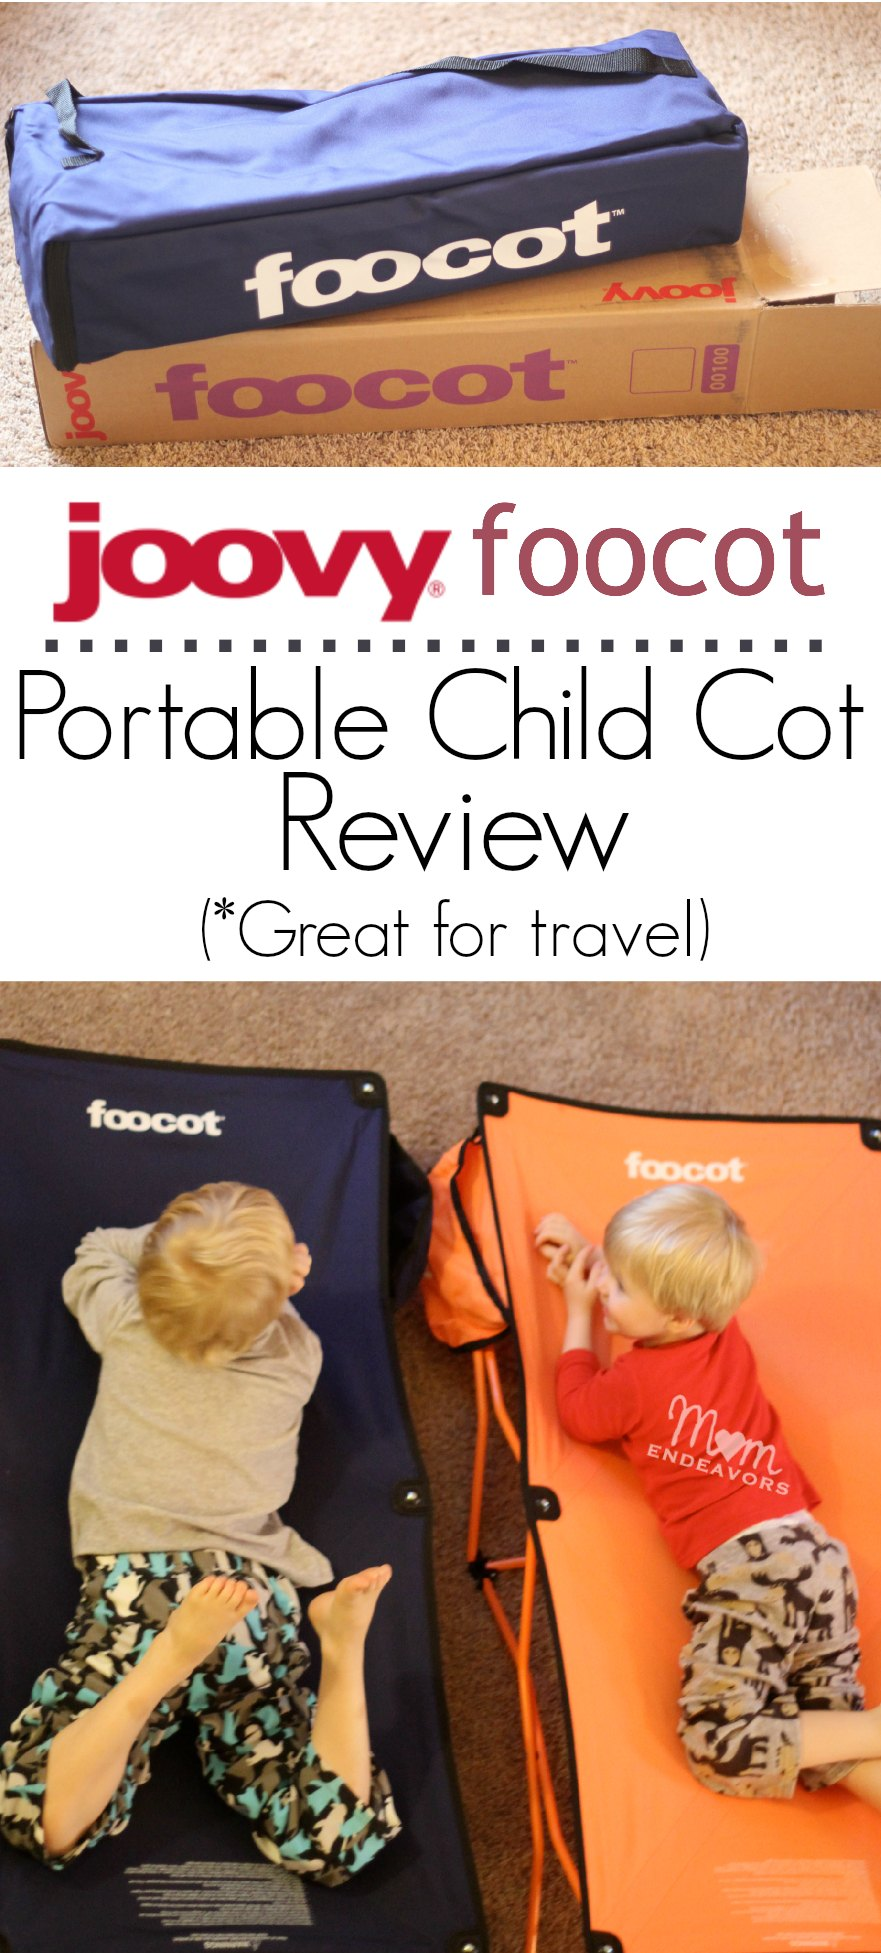 Joovy Foocot Review